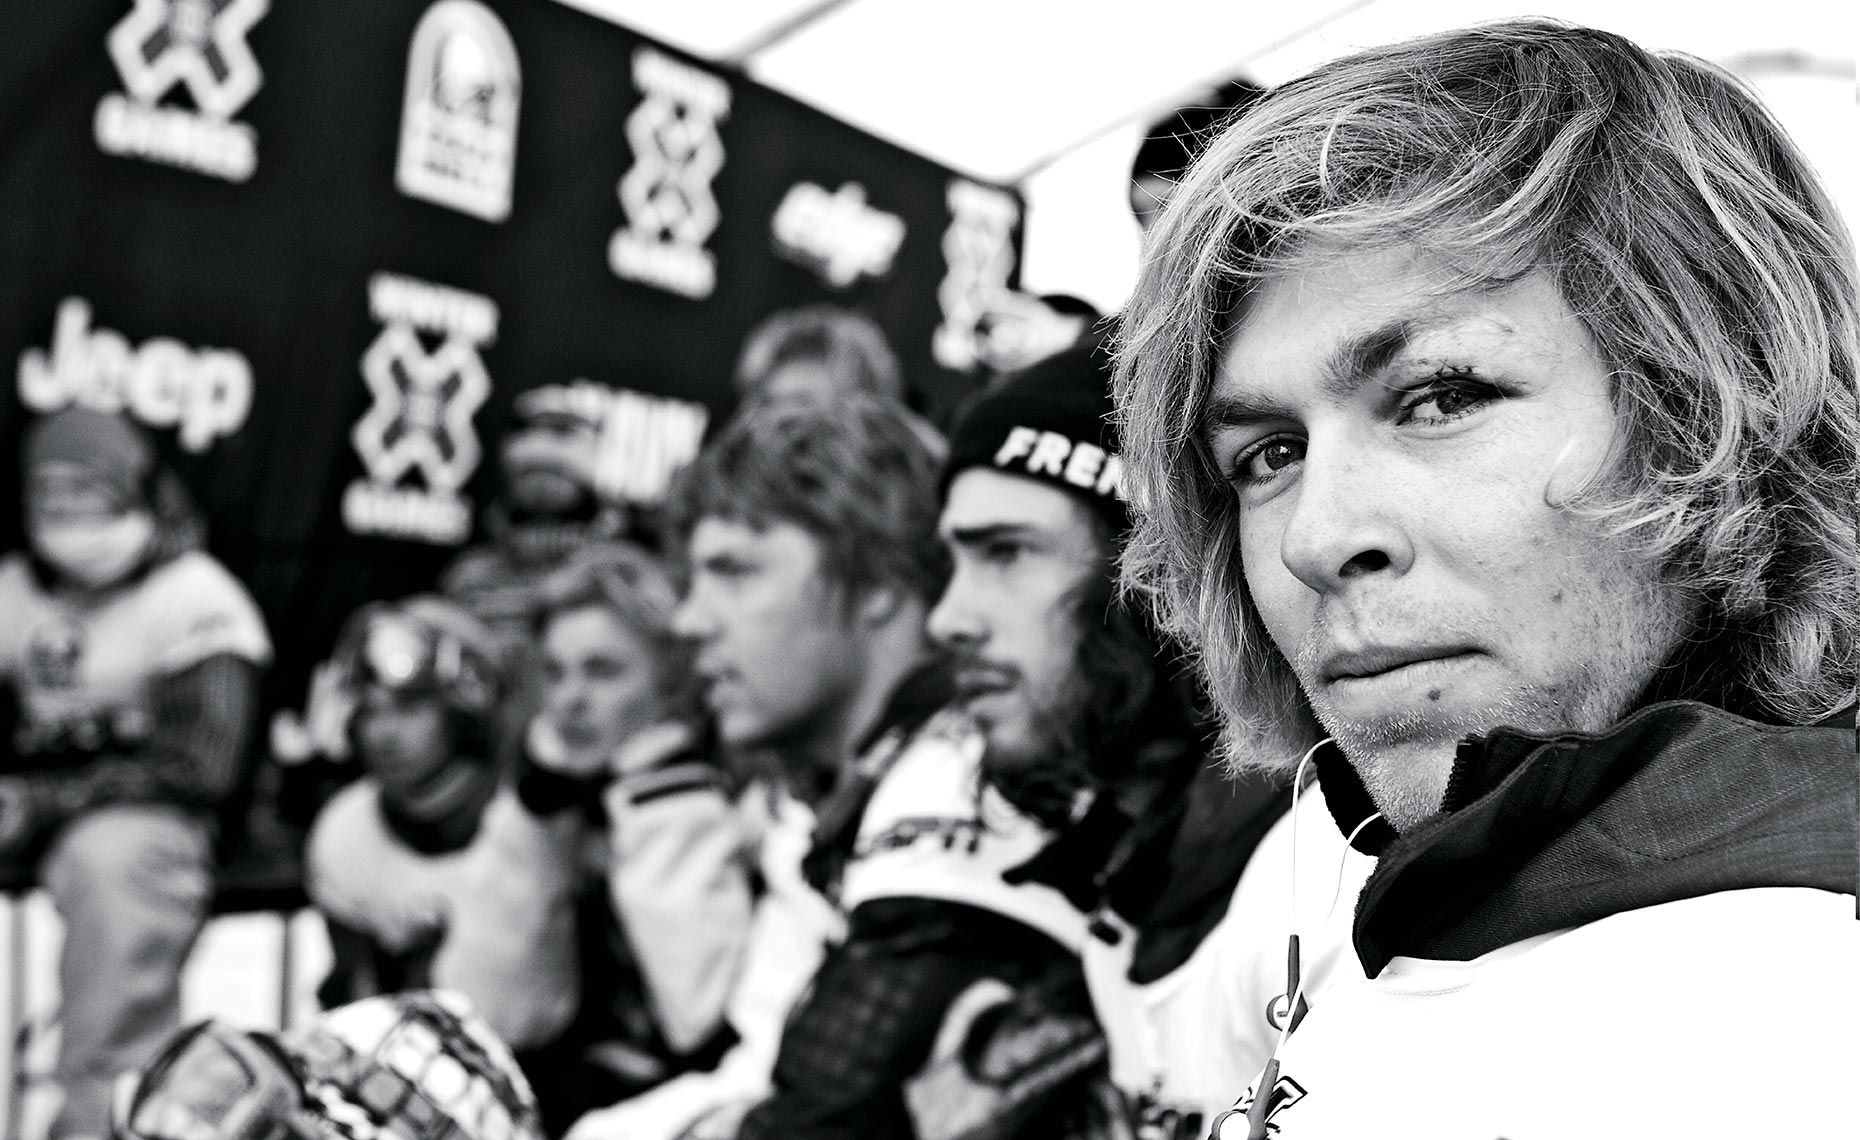 17_Kevin_Pearce_Frends_Winter_X_Games_Aspen_Colorado_Portrait_Lifestyle_Chris_Wellhausen_Photography.JPG